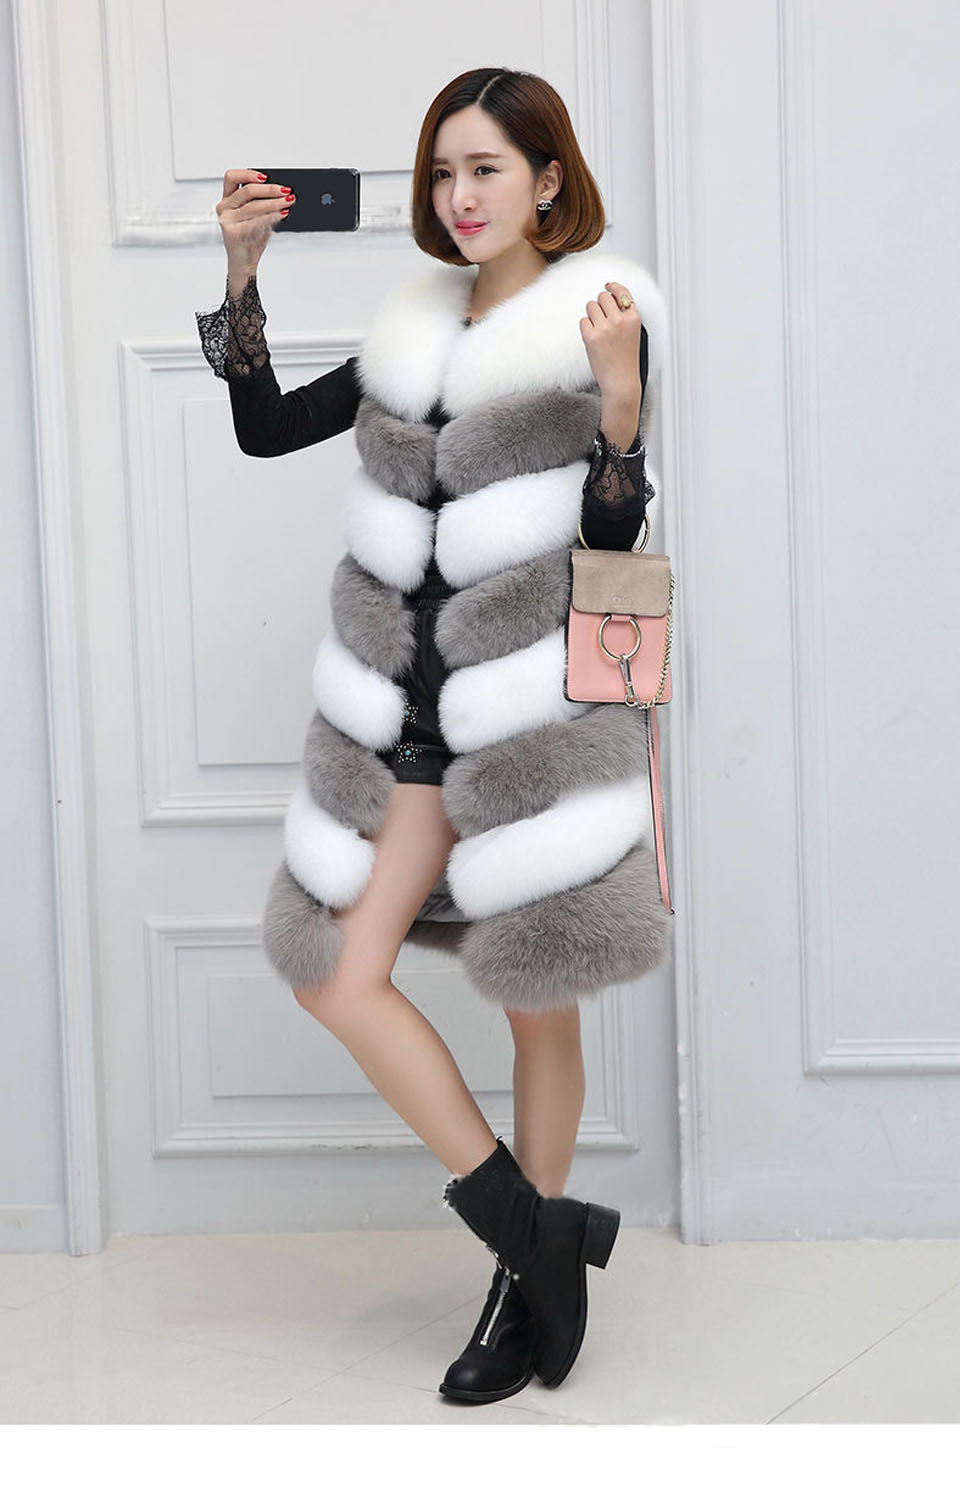 2017 winter long coats female imitation fur vest women stitching color fox fur vest fashion jacket faux fur vest coat plus size curved faux fur vest